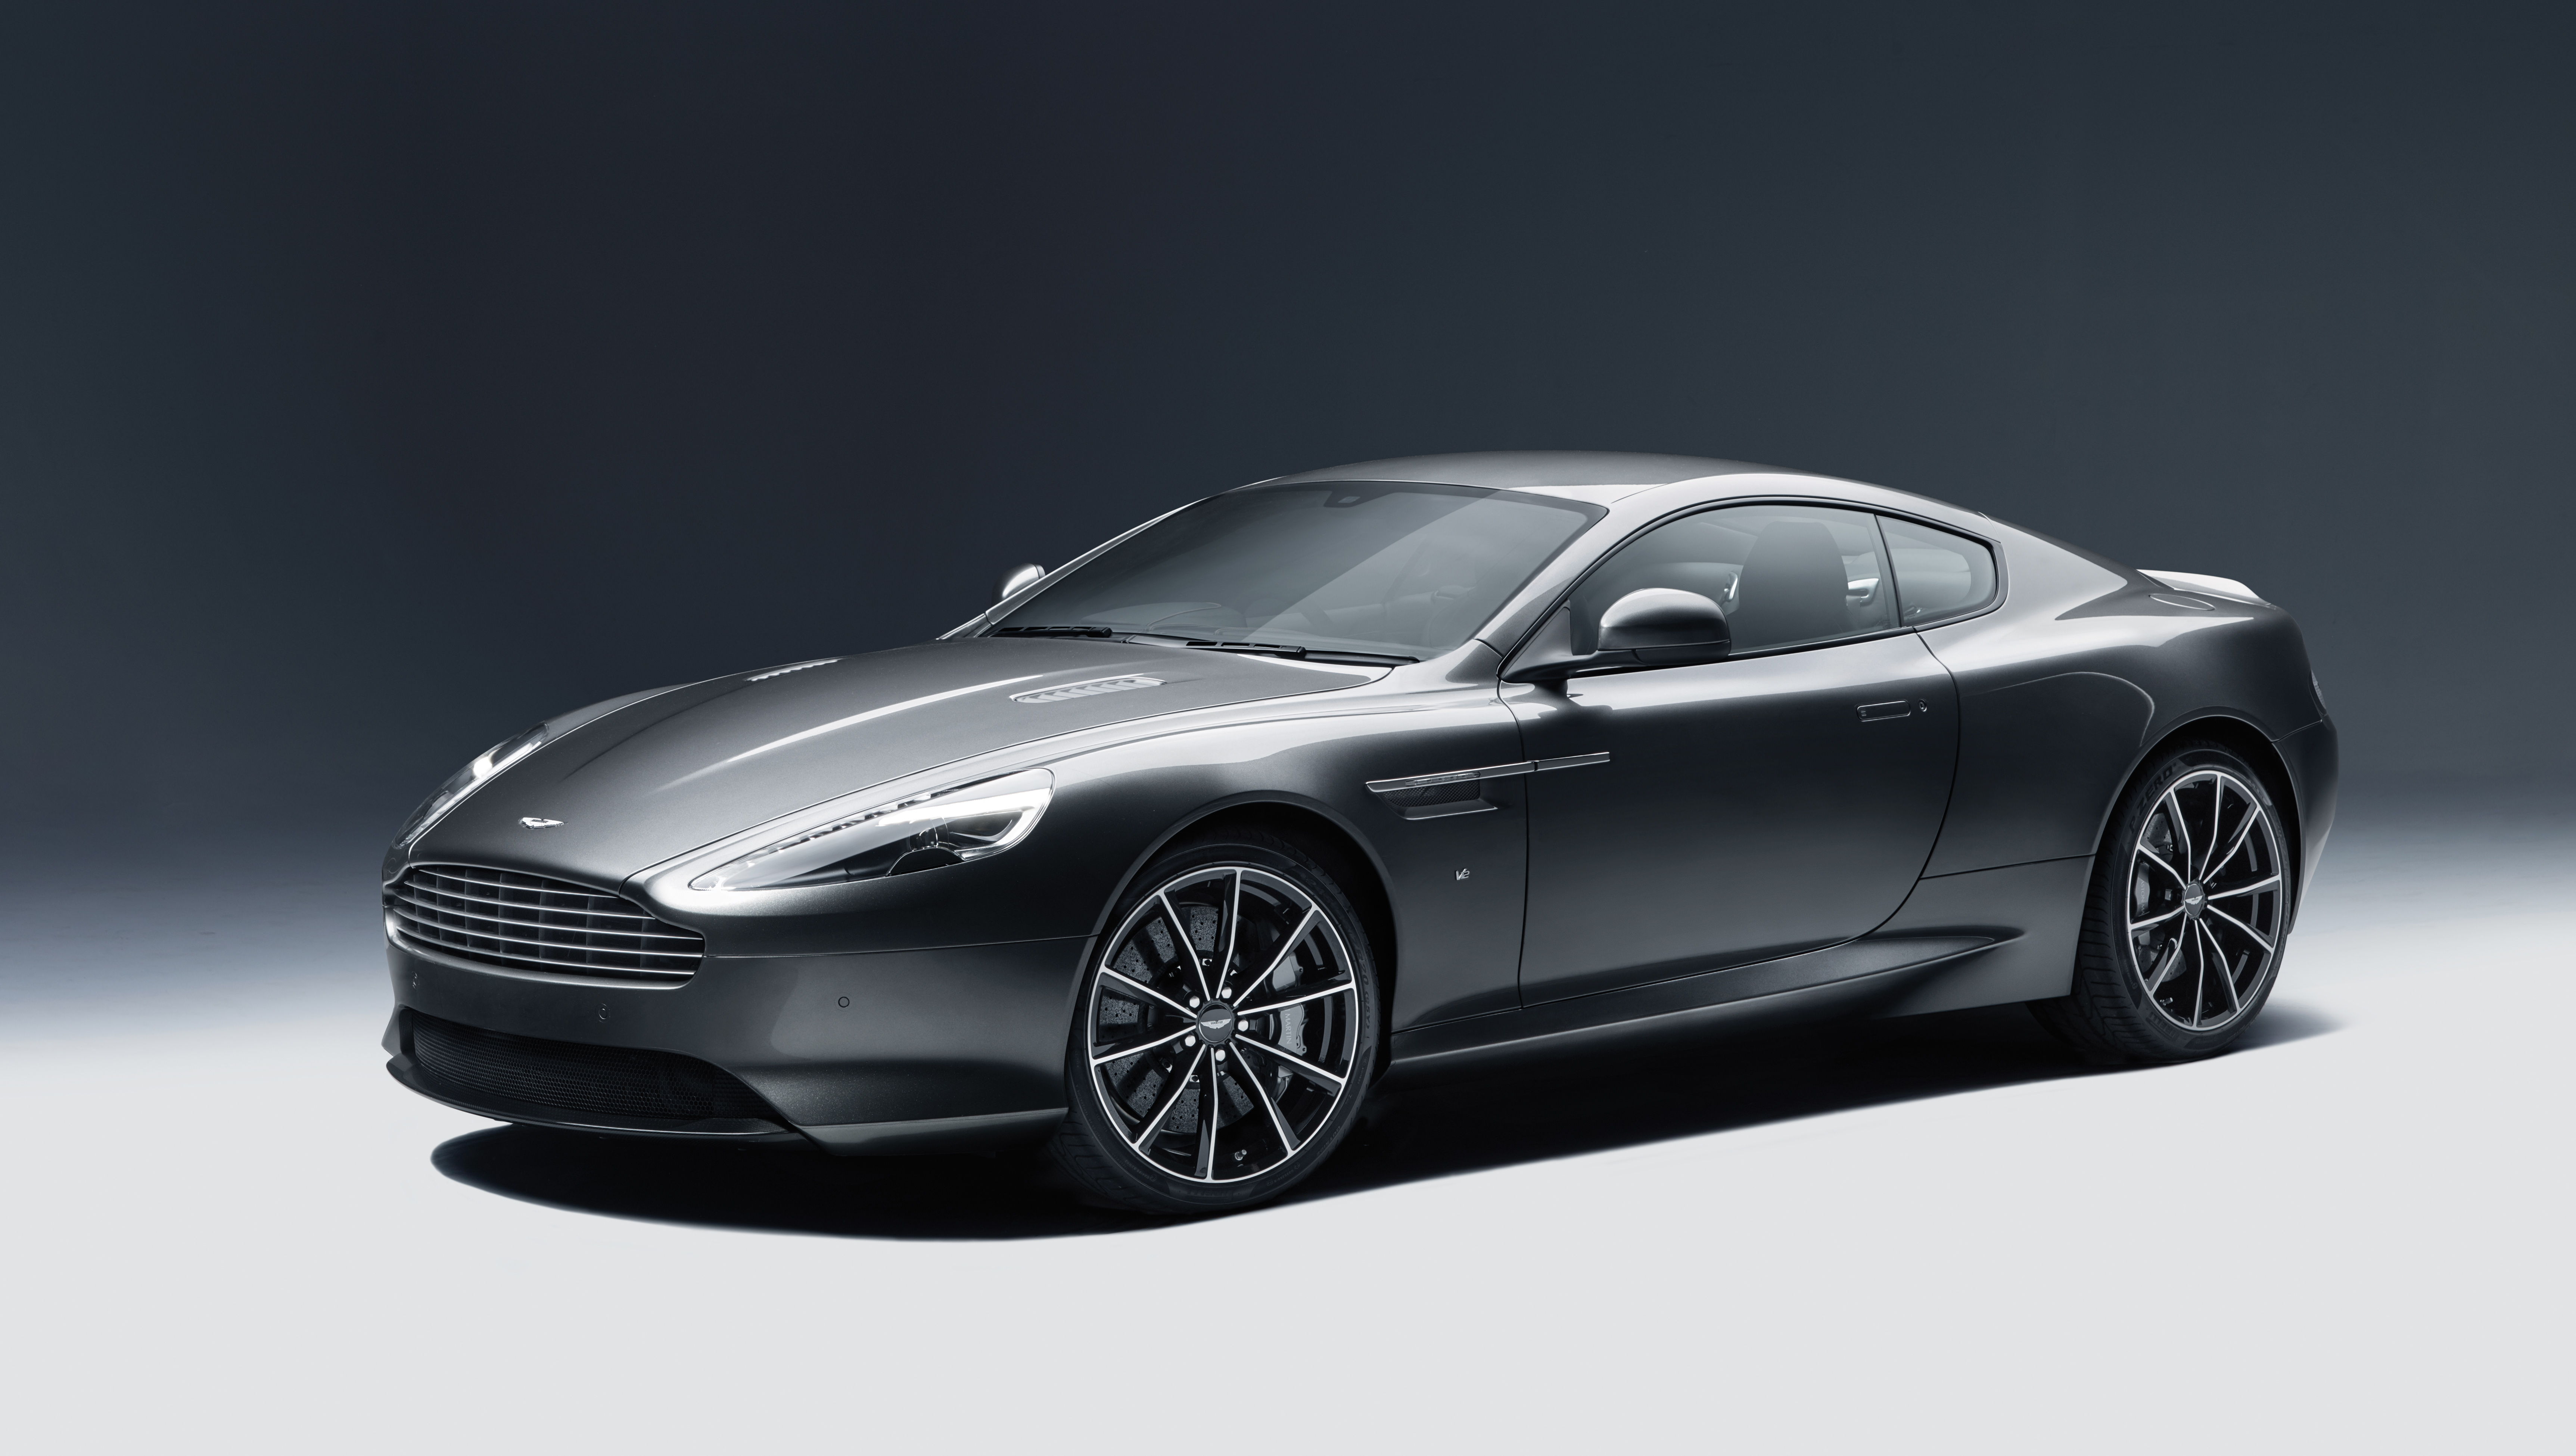 Aston Martin Offers >> Aston Martin Offers Glimpse Of Its Second Century At Pebble Beach